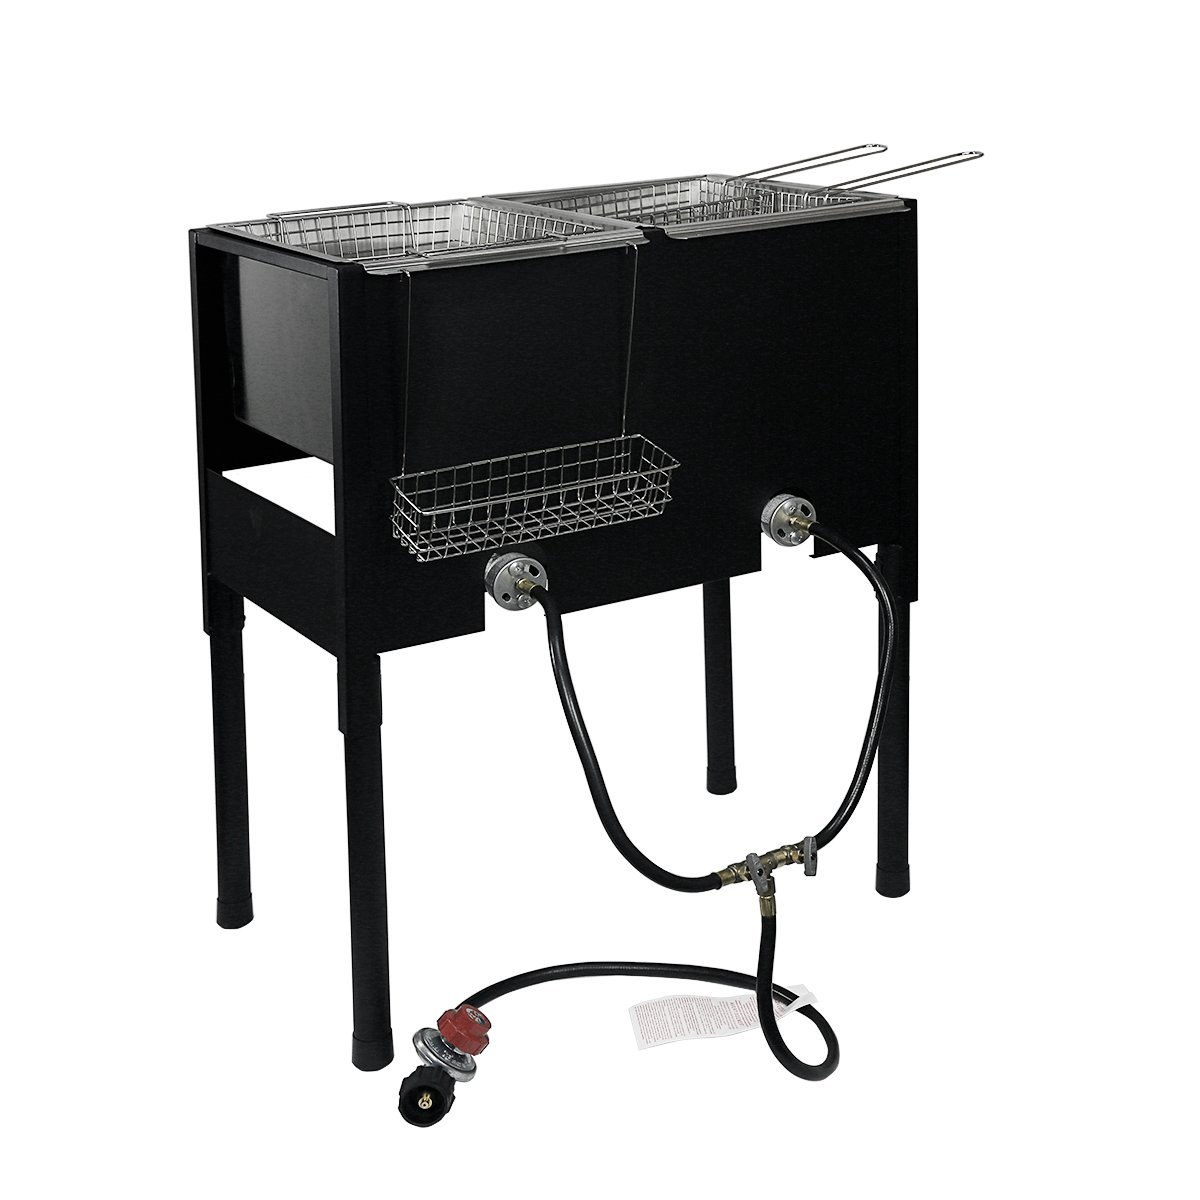 XtremepowerUS High-Pressure Triple Basket Deep Fryer